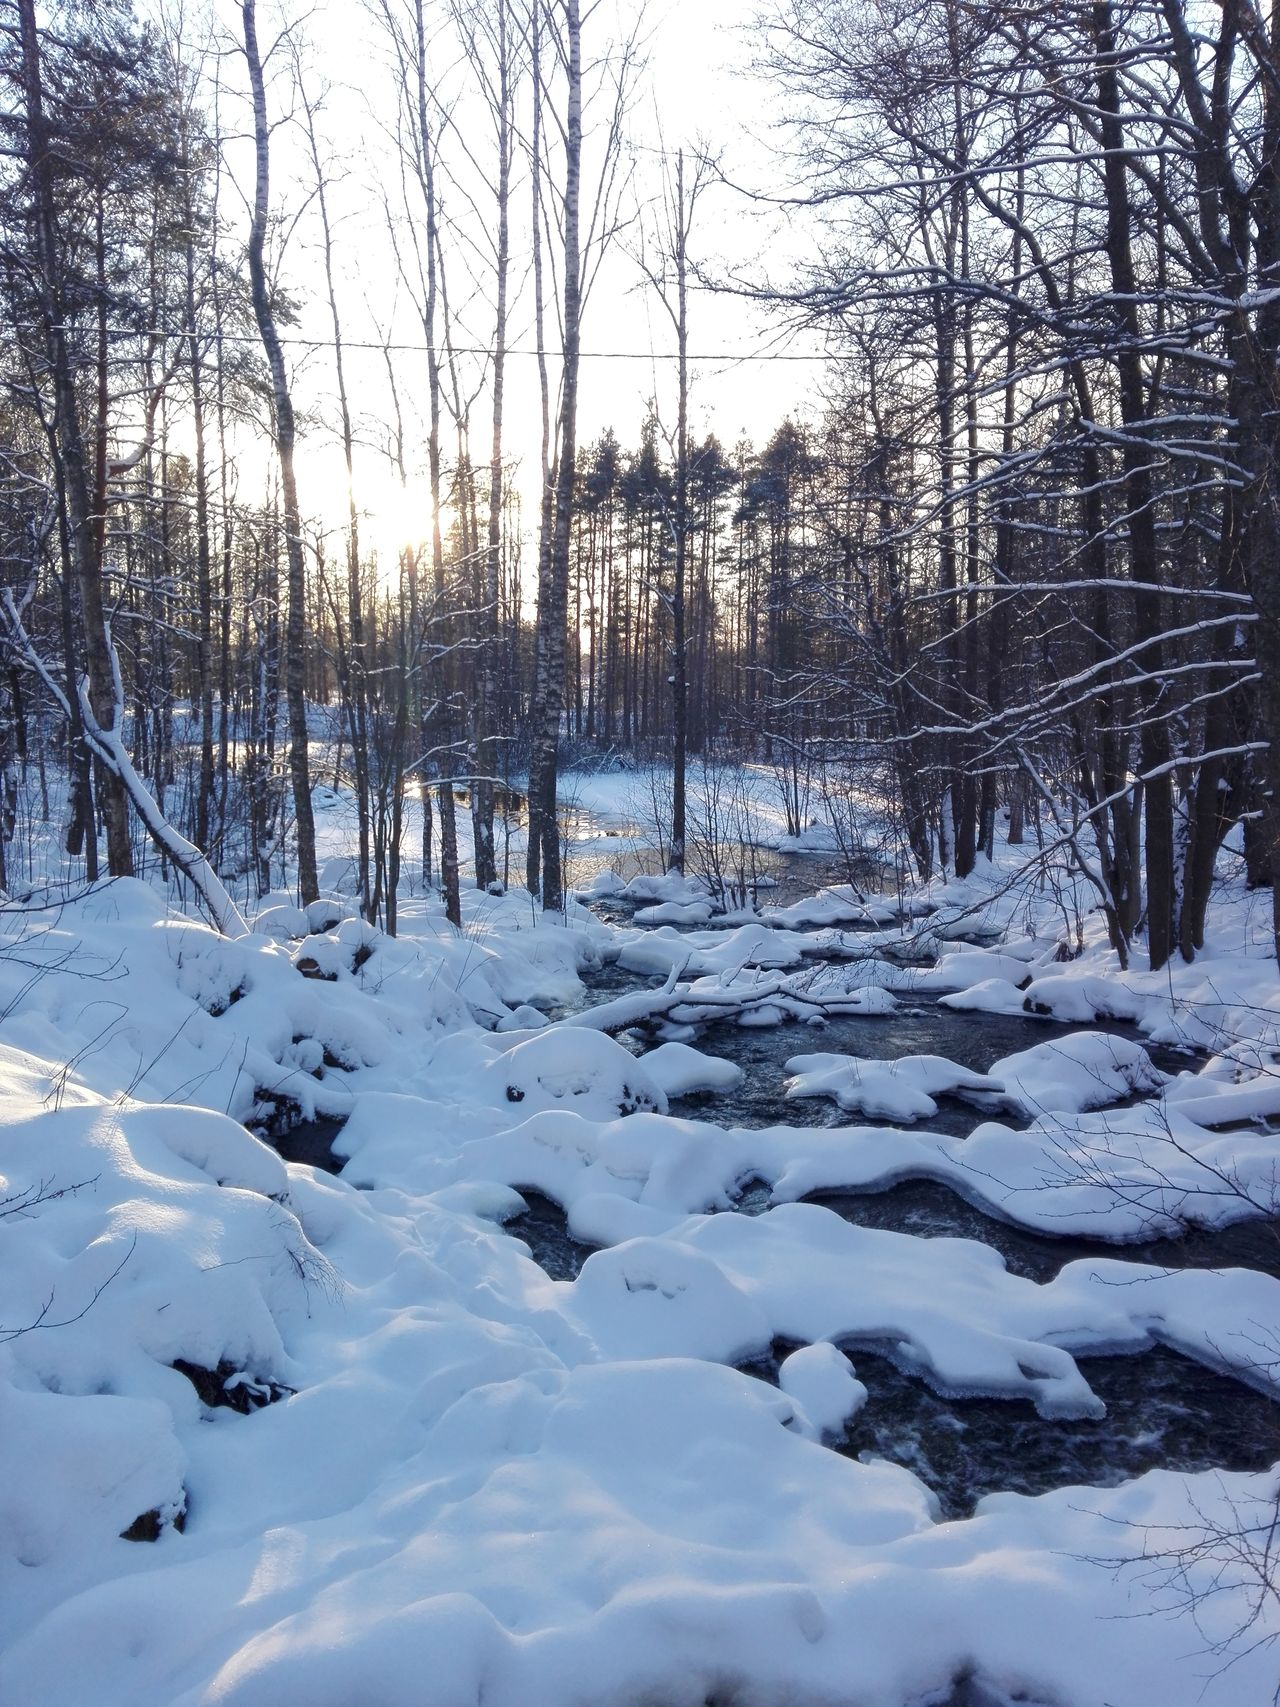 The river does not freeze ever Cold Temperature Winter Snow Nature Beauty In Nature Weather Outdoors Wintertime Landscape_photography Snow ❄ Winter Landscape Naturebeauty Nature Photography Photographer Photography Finnish Nature Naturelovers Naturepath Flowing Water Ice